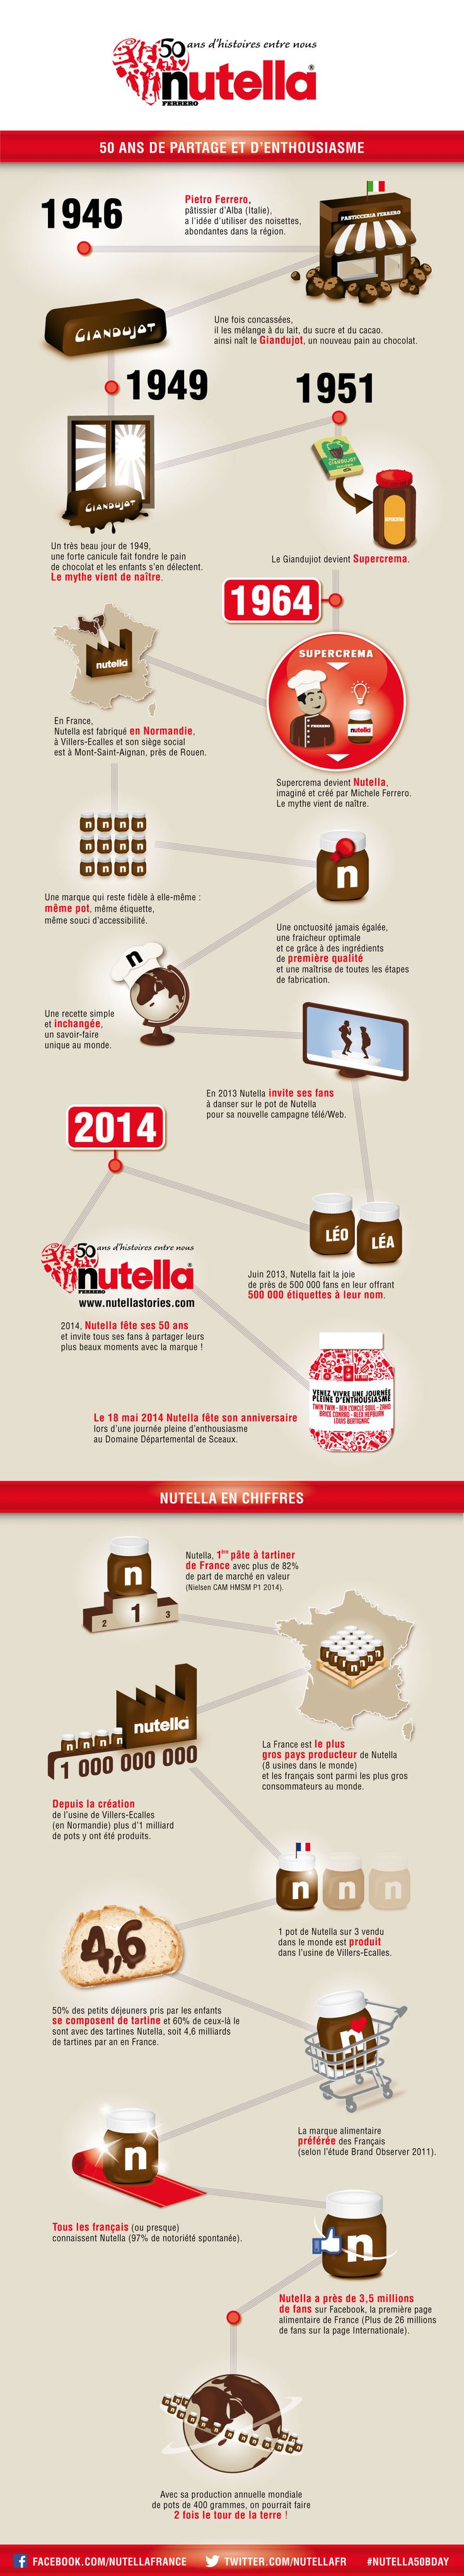 Nutella fête ses 50 ans: Infographic about a popular French food. #nourriture #France